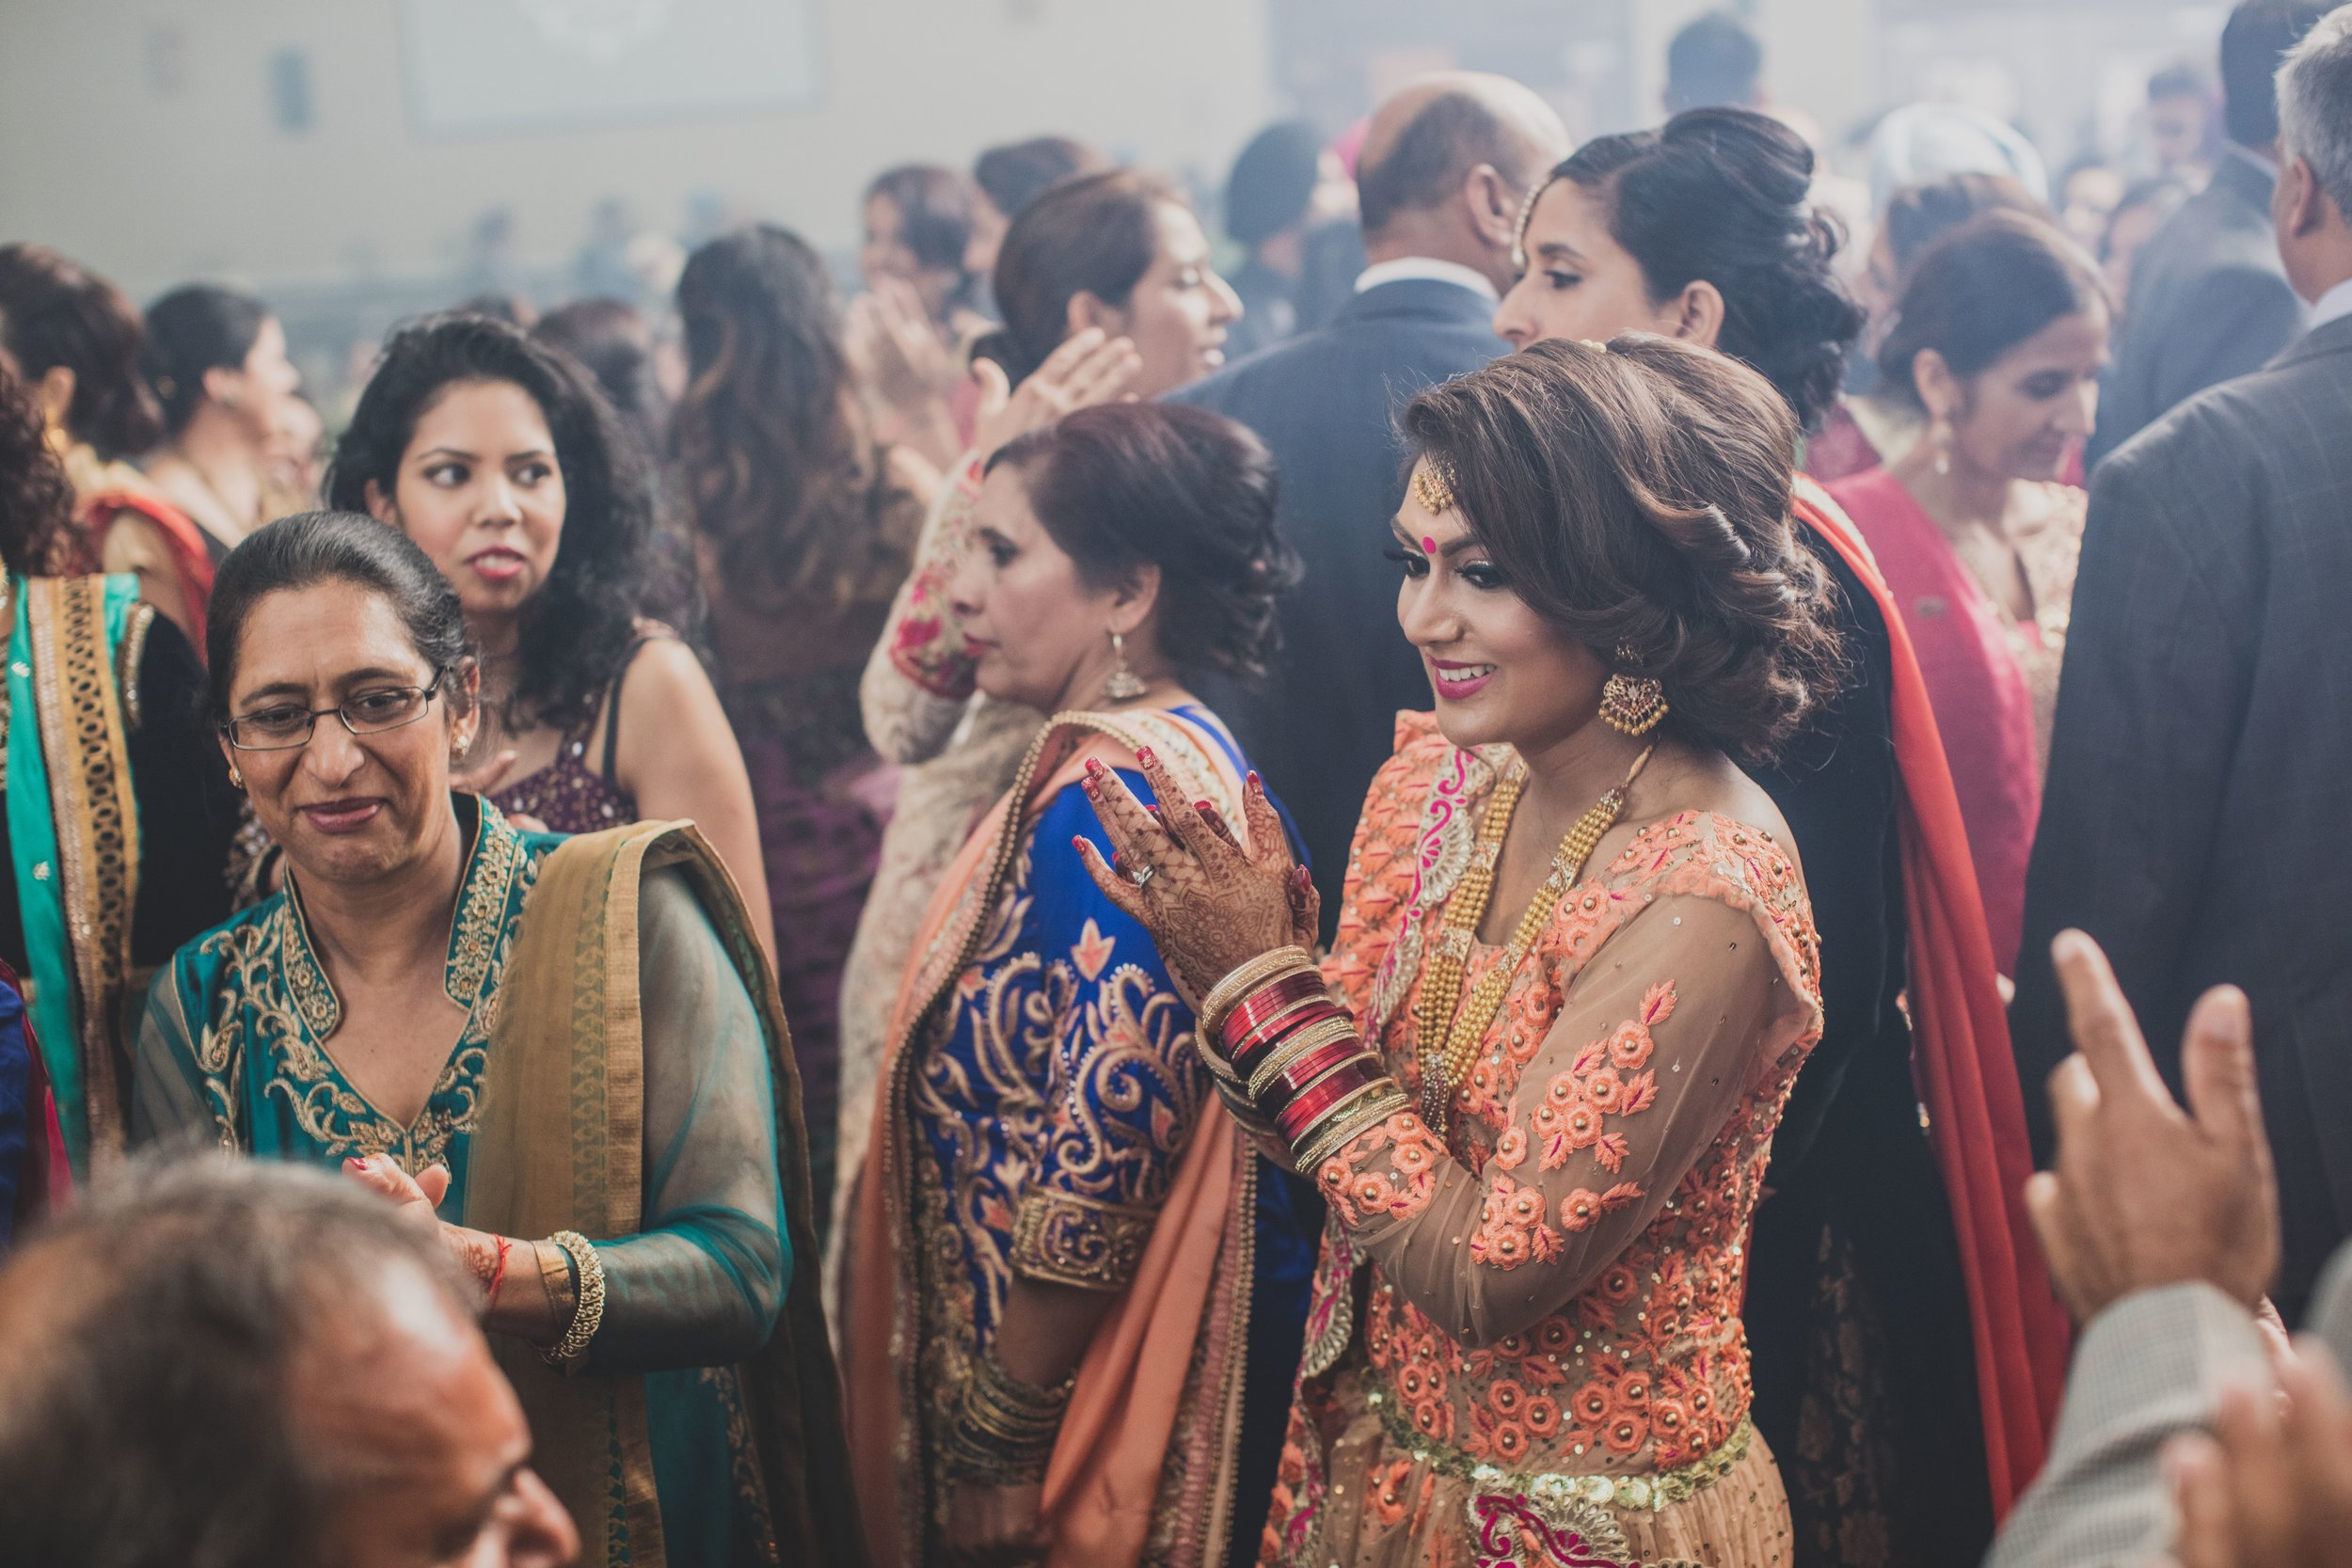 onlineAman & Ravi Wedding & Reception-8181.jpg